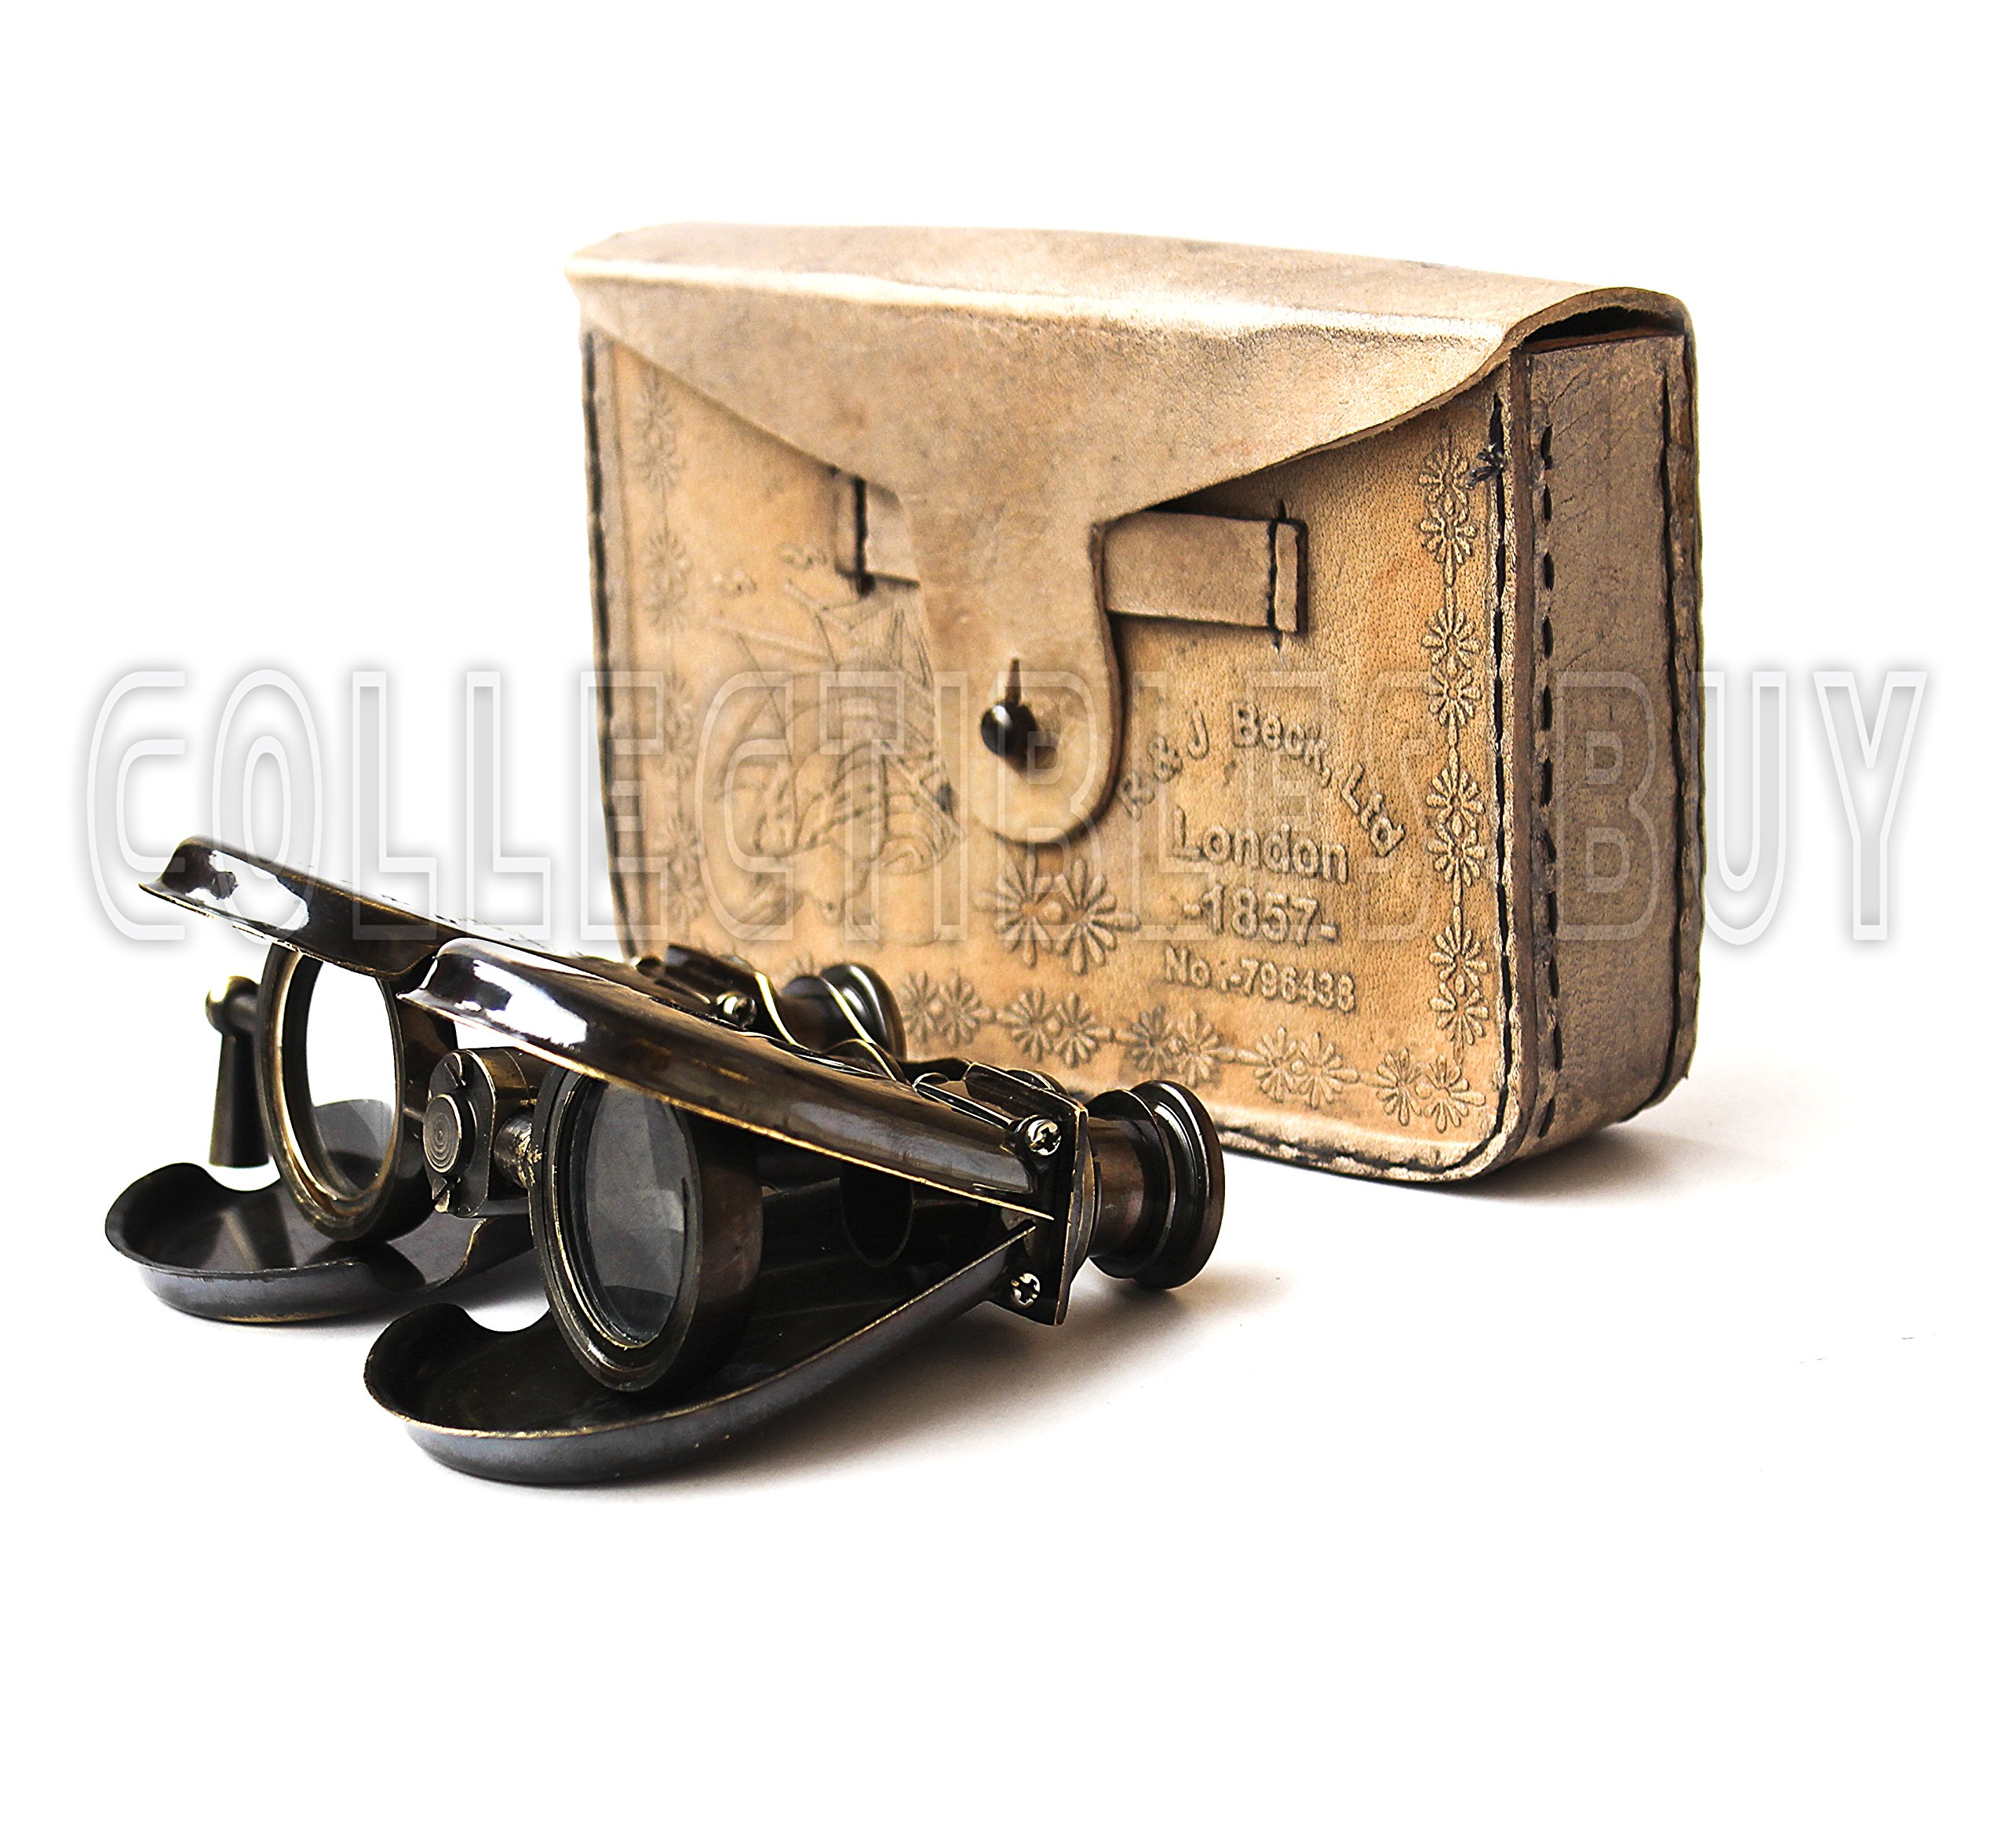 Collectibles Buy Classic Marine Spy Glass Antique London 1857 R & J Beck Brass Binocular Collectibles Gift by Collectibles Buy